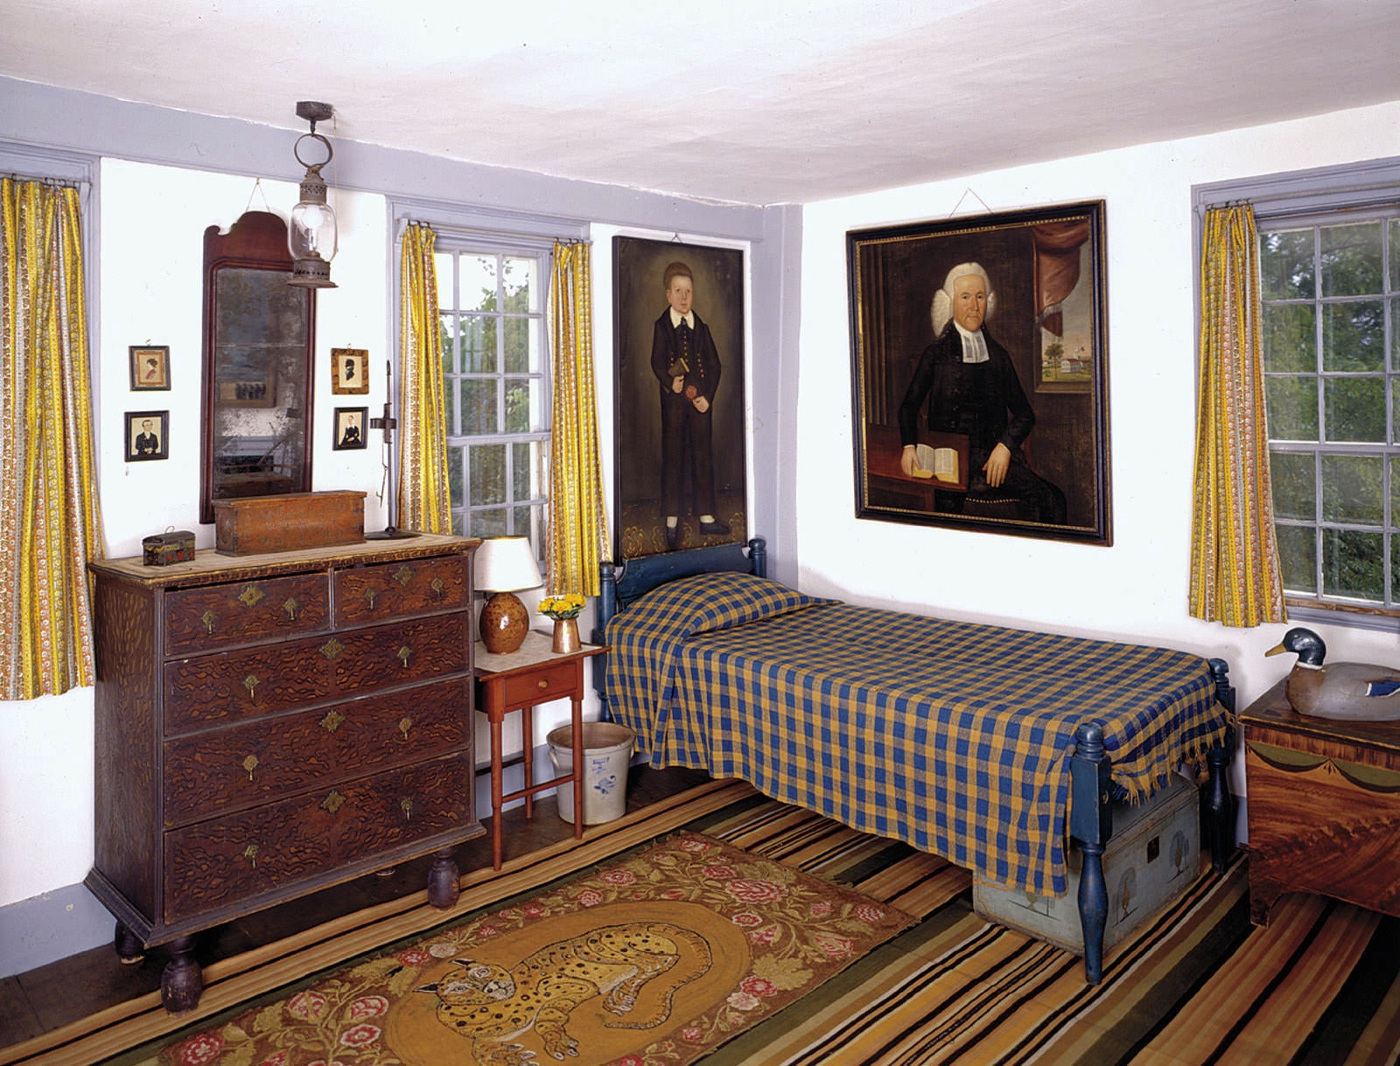 Cogswell 39 s grant an historic new england property offers for Colonial bedroom decor